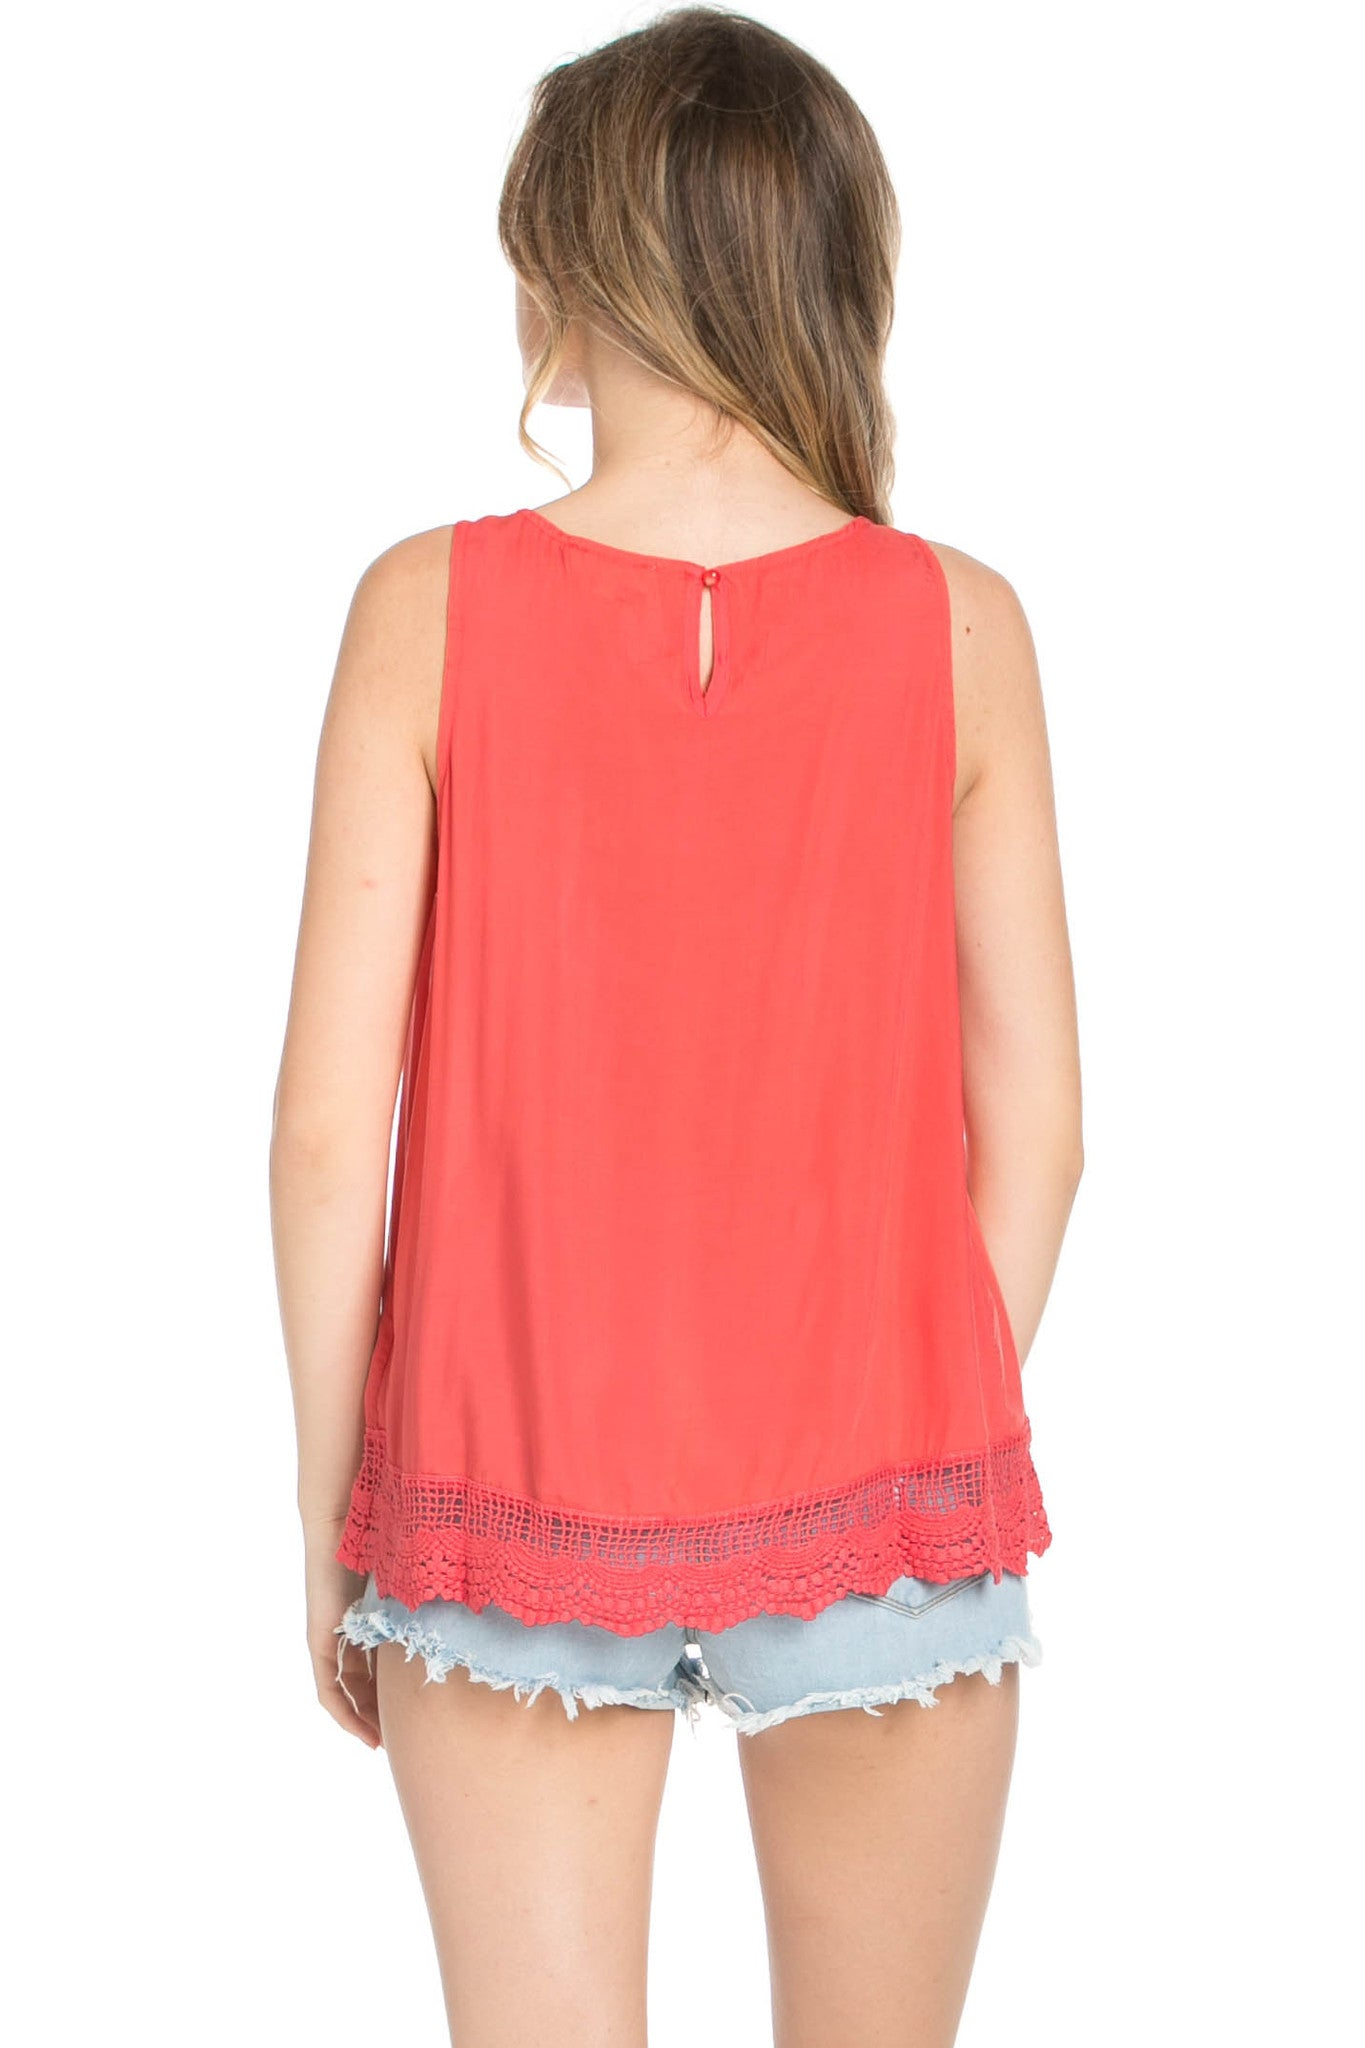 Crochets and Lace Coral Top - Tops - My Yuccie - 4